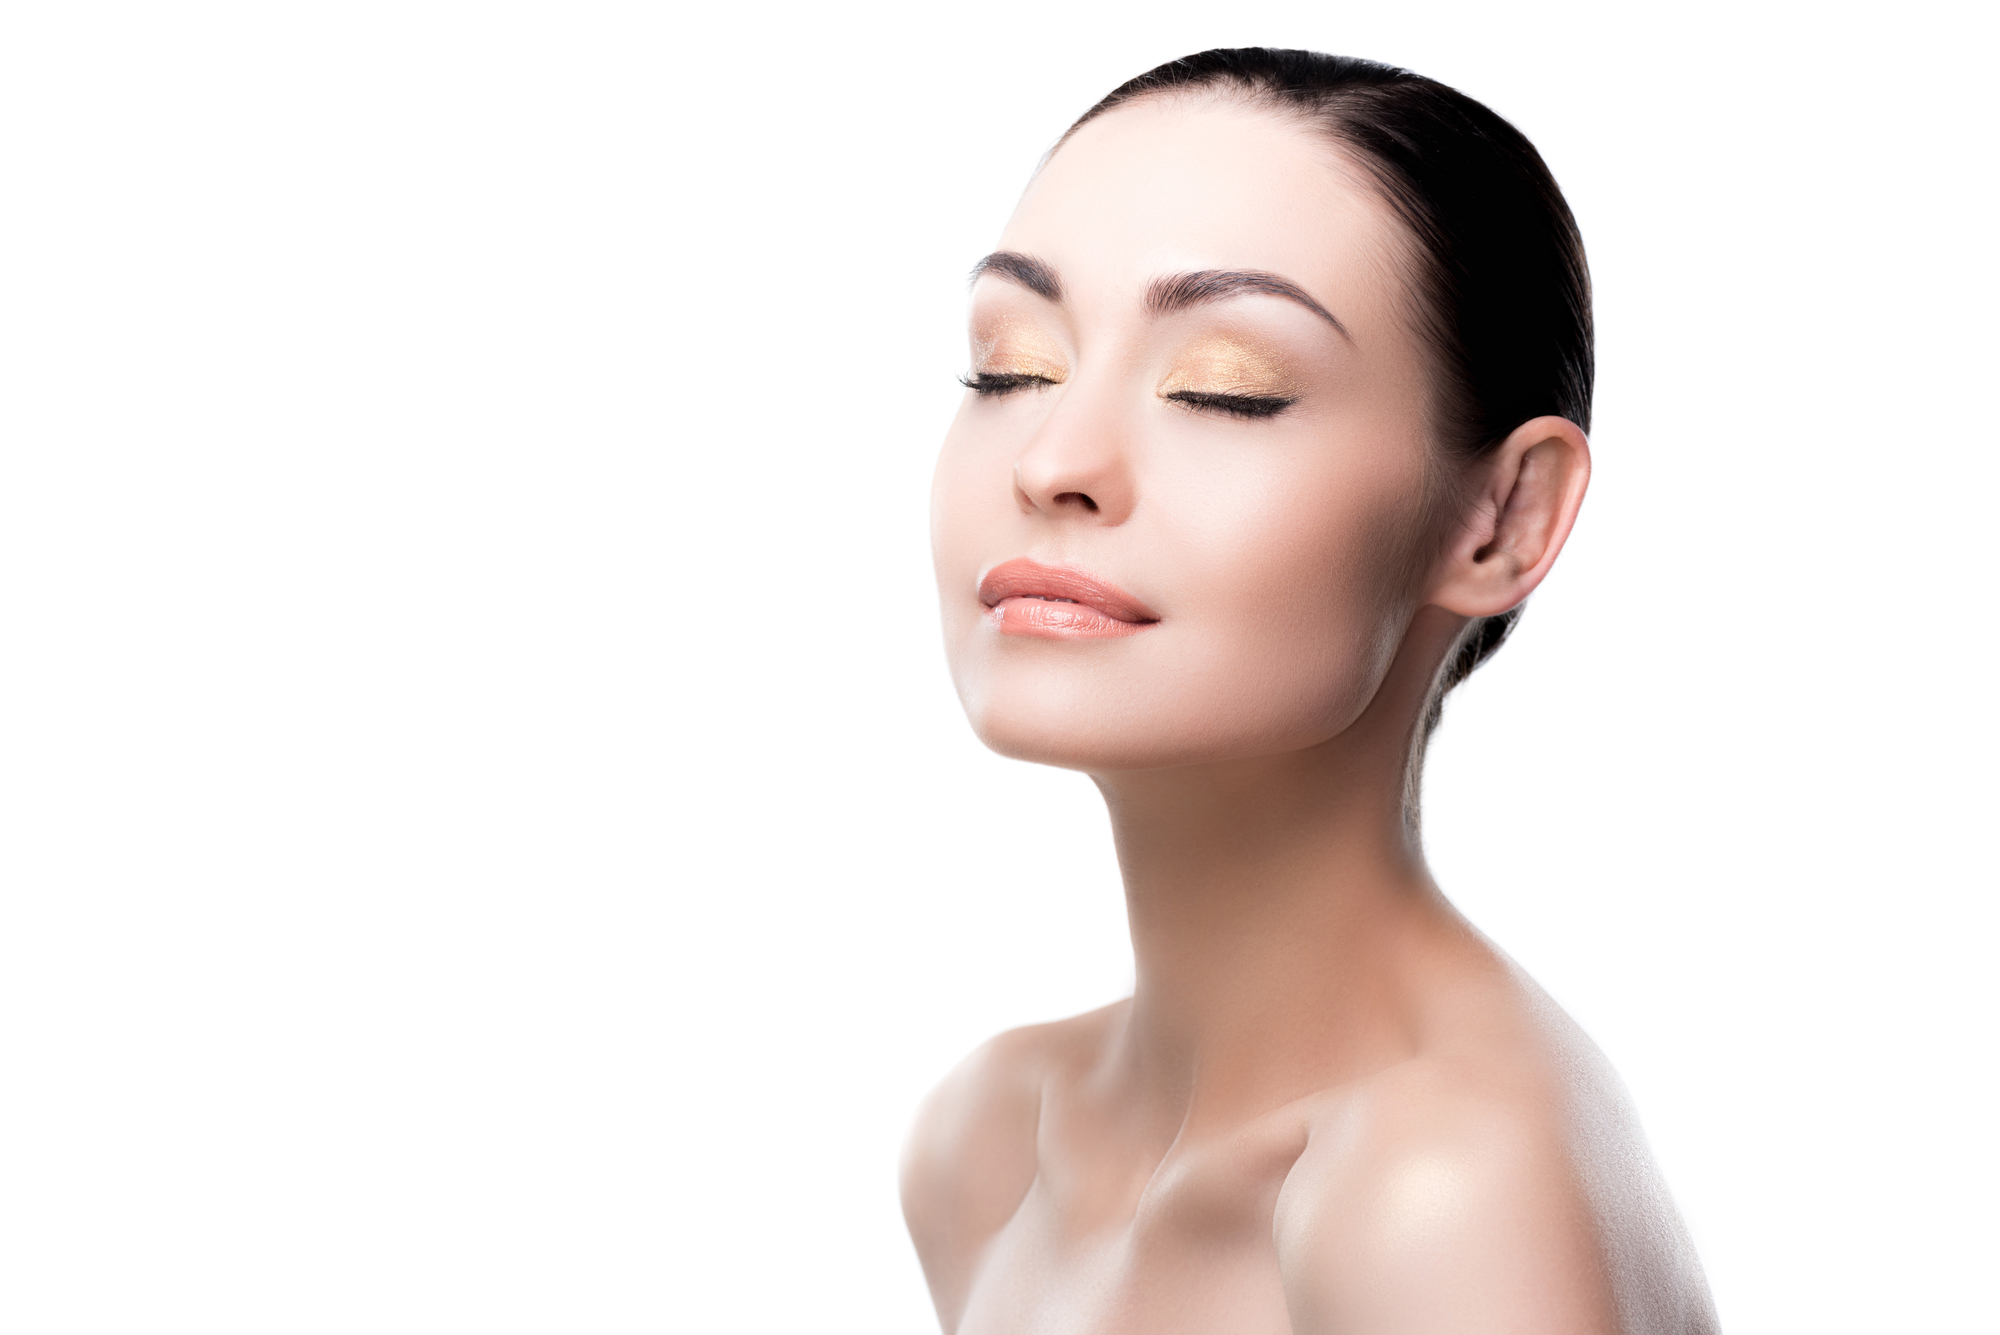 who is the best botox in orlndo specialists close to me?